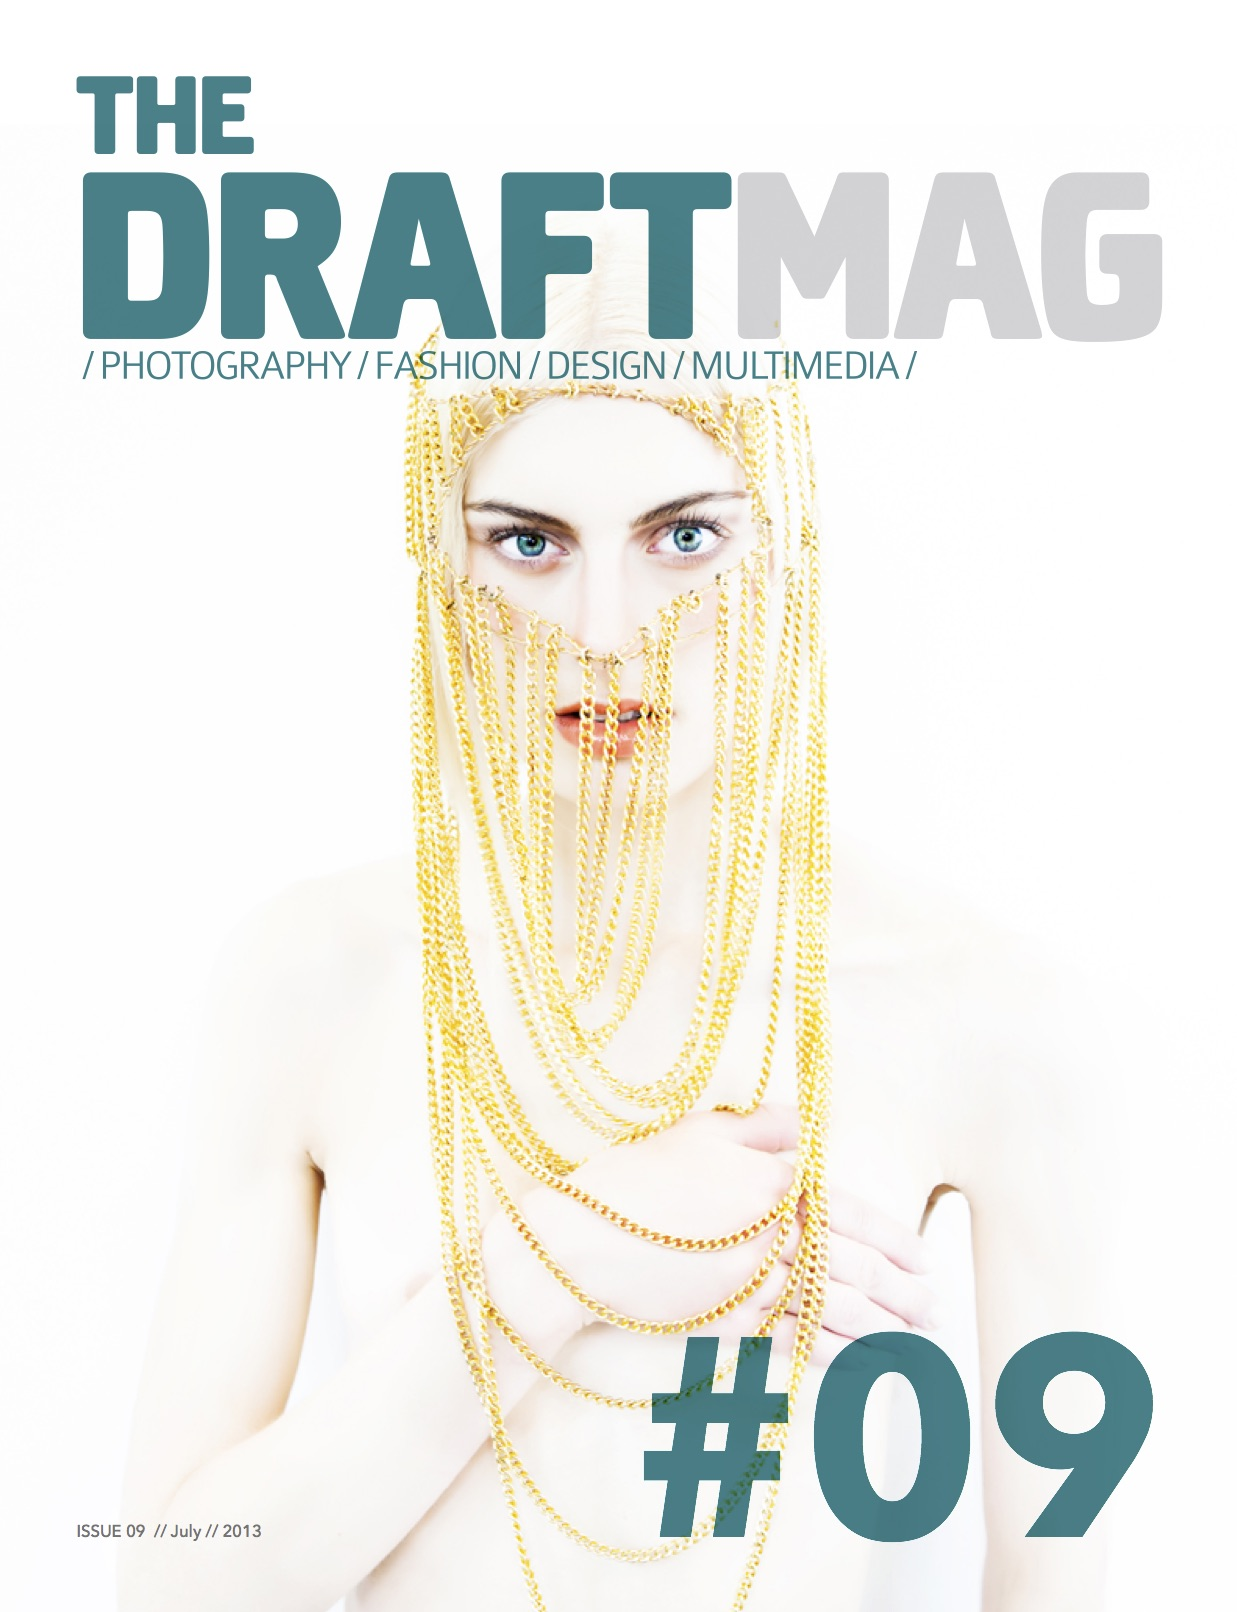 The Draft Mag Issue #09.Click   here   to see the full issue.